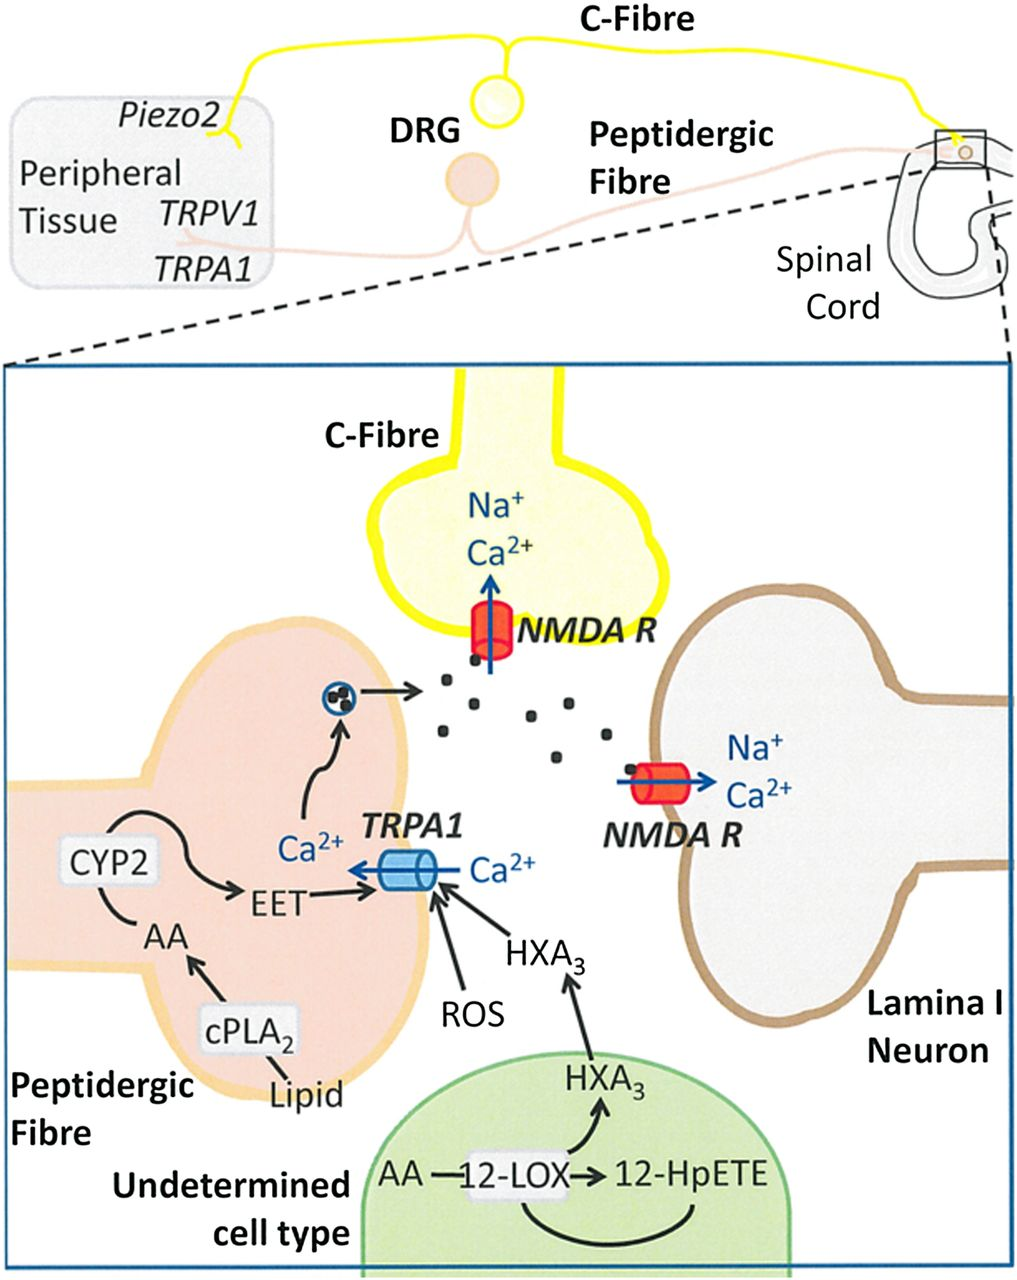 Transient Receptor Potential Channels As Drug Targets From The Flasher Circuit Using Quotjunction Breakdownquot Science Of Basic Research To Art Medicine Pharmacological Reviews